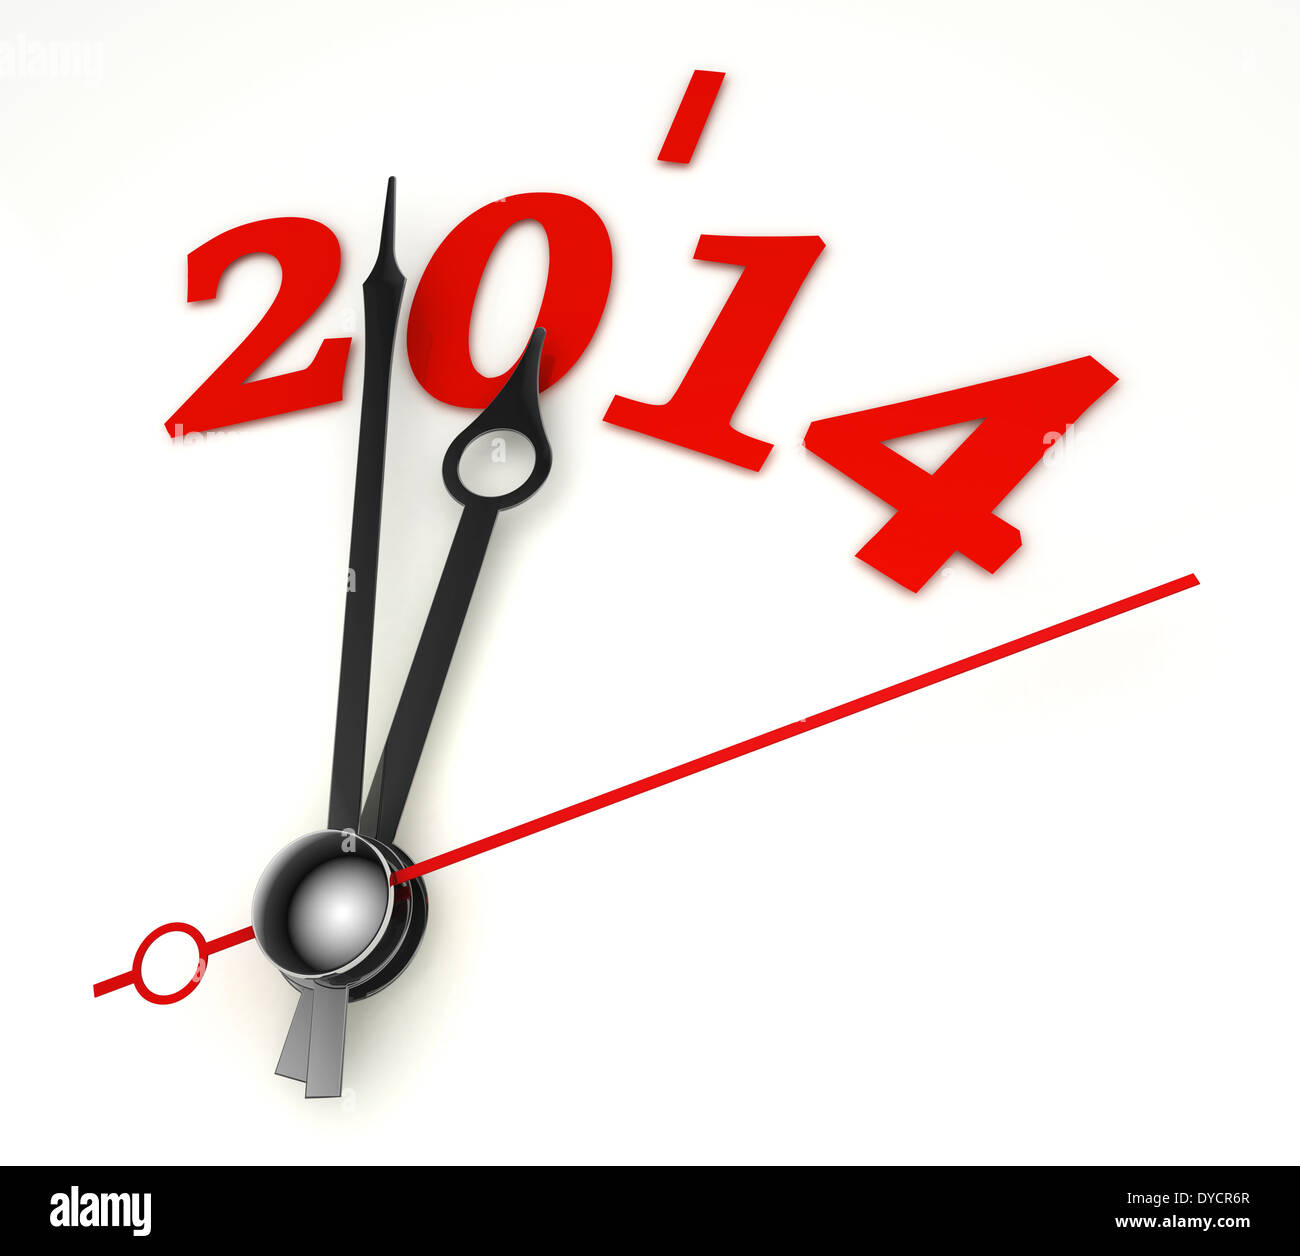 new year 2014 concept clock hands closeup on whte background - Stock Image